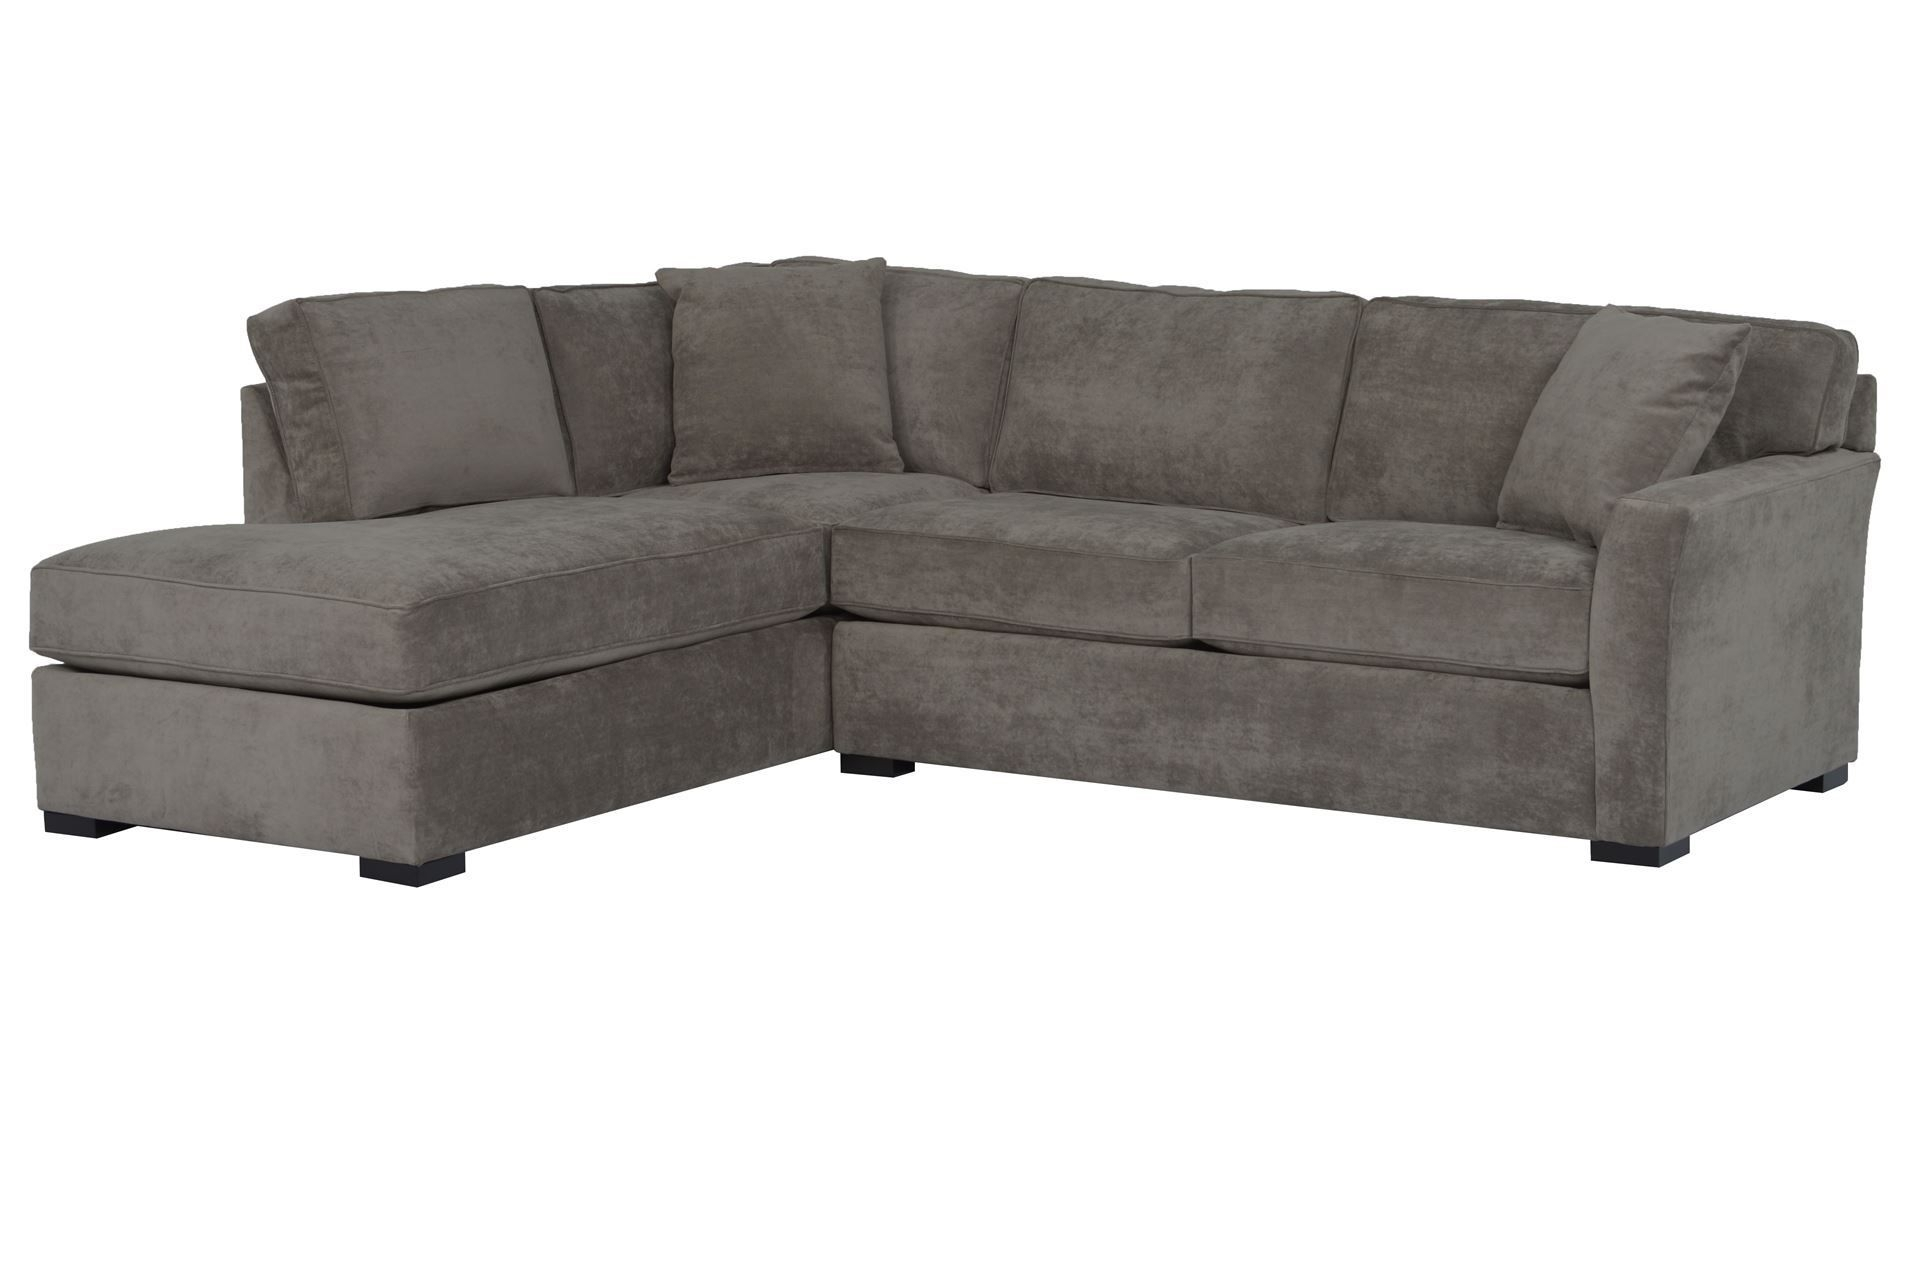 Aspen 2 Piece Sleeper Sectional W/laf Chaise | Living Room Intended For Aspen 2 Piece Sleeper Sectionals With Laf Chaise (Image 7 of 25)